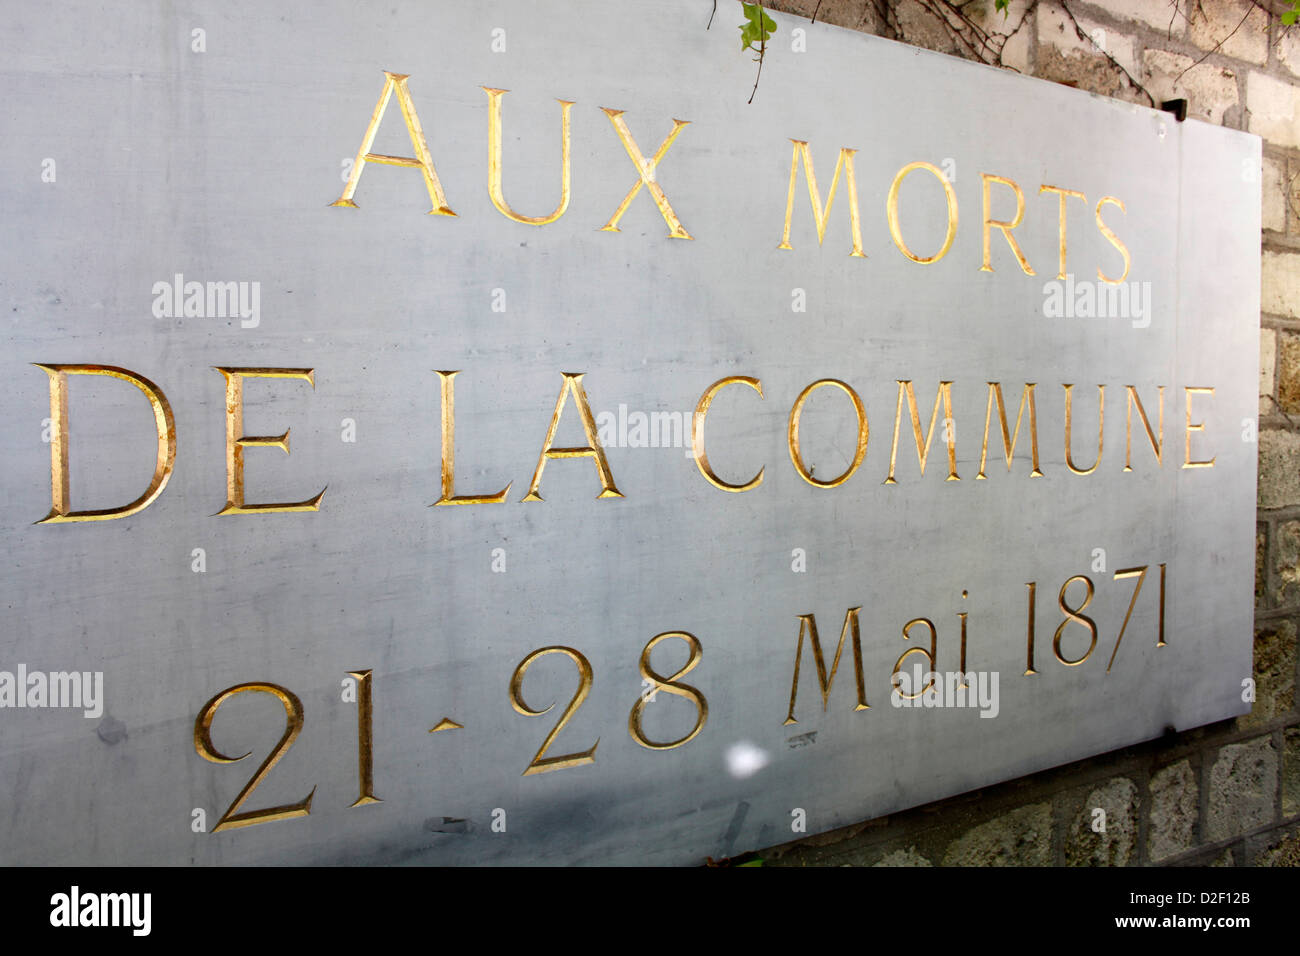 Mur des Federes in the Pere Lachaise cemetery (commemorating the victims of the 1871 Paris Commune) Paris. France. - Stock Image